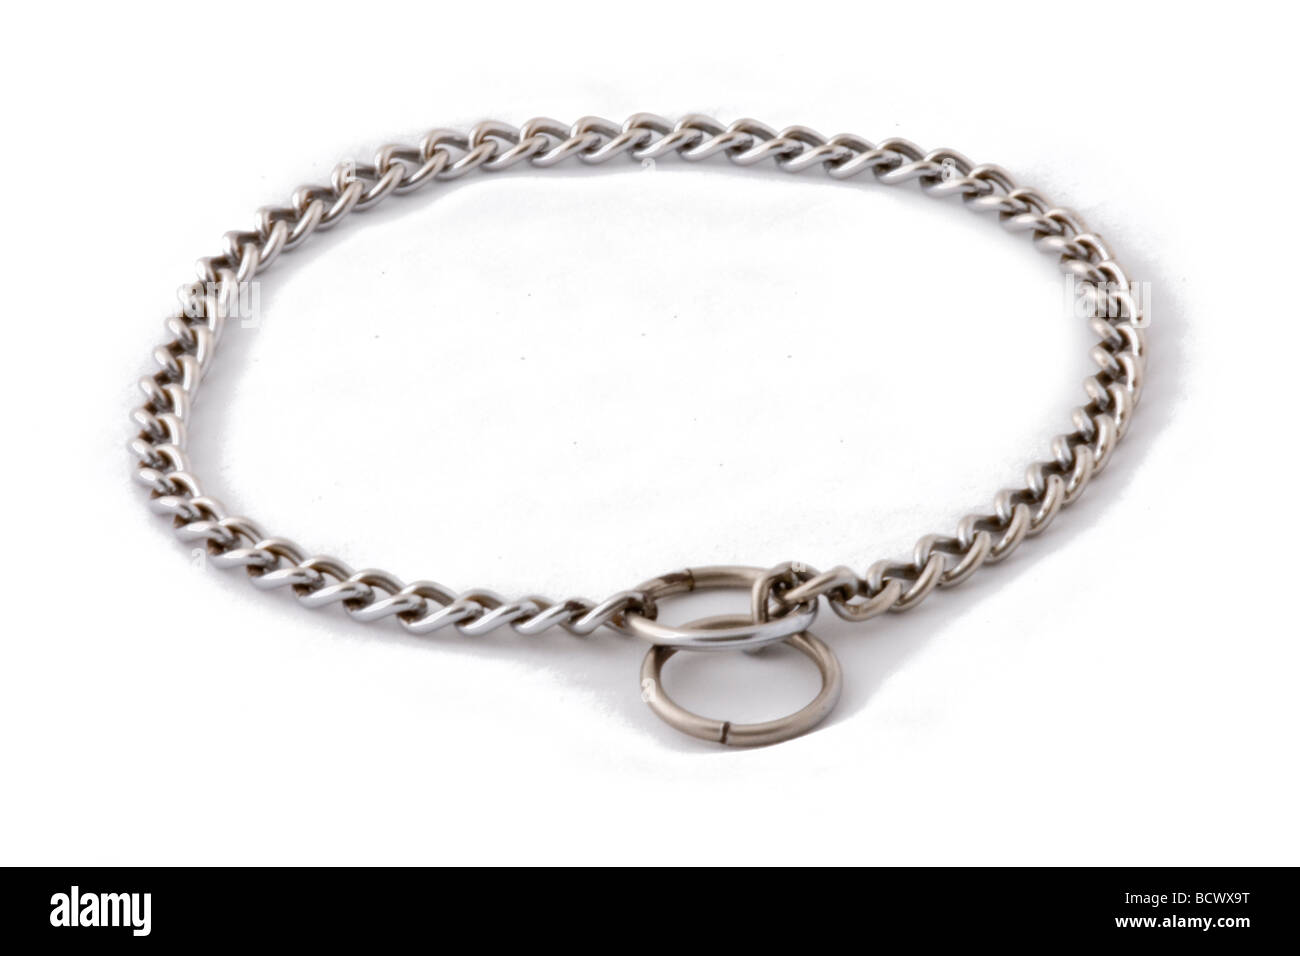 Check chain for dog training - Stock Image